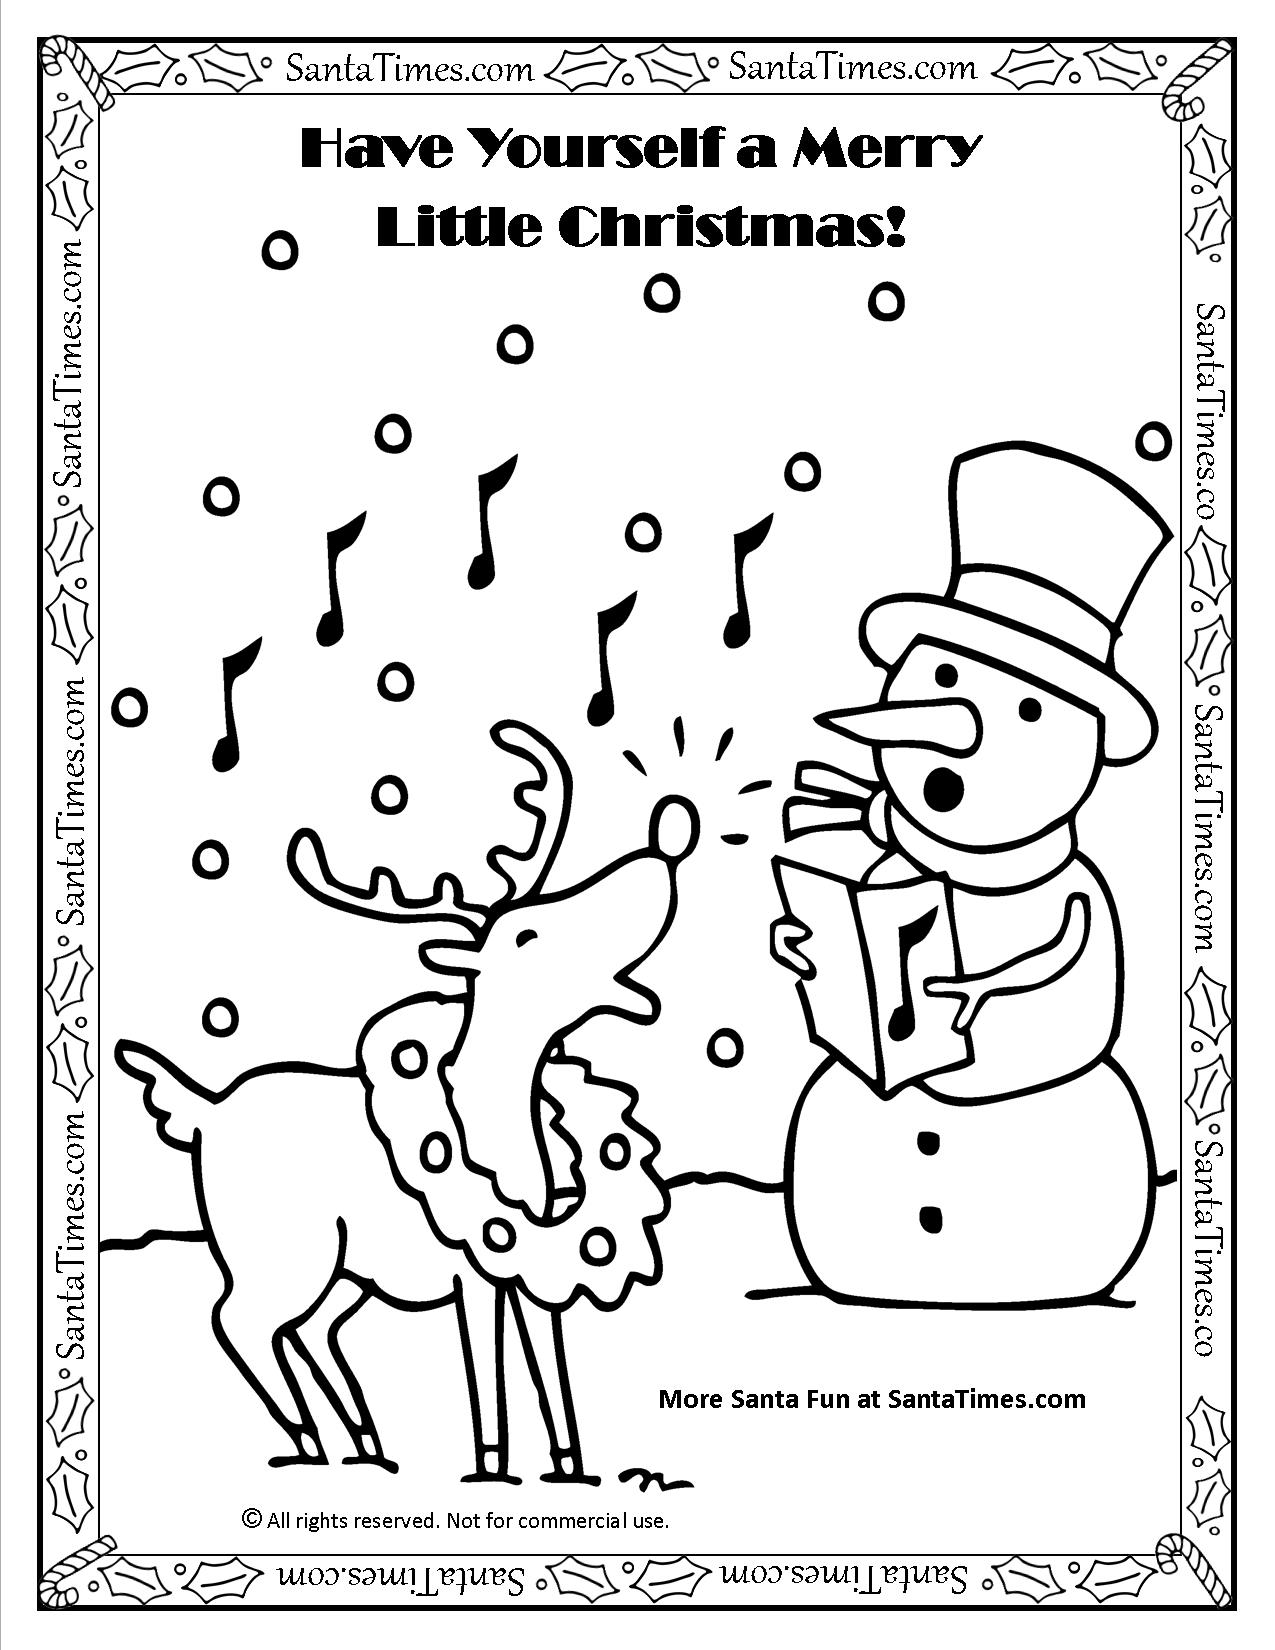 Have Yourself A Merry Little Christmas Coloring Page